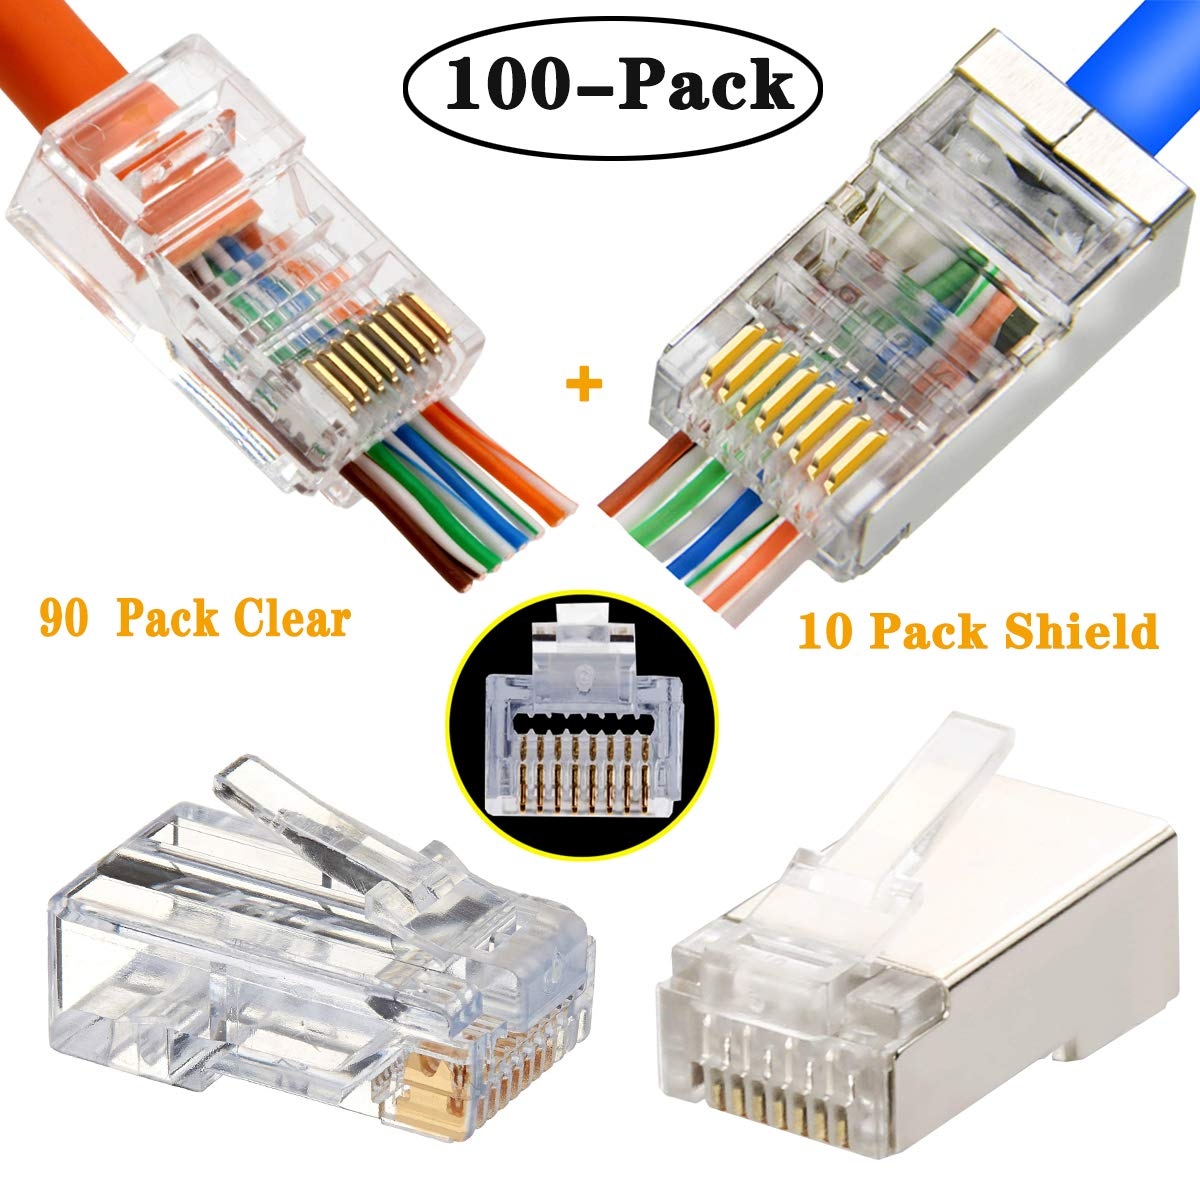 RJ45 CAT5 Cat6 Connector Pass Through Enthernet Network Shiled Clear Ends Plug 100pcs by PETECHTOOL